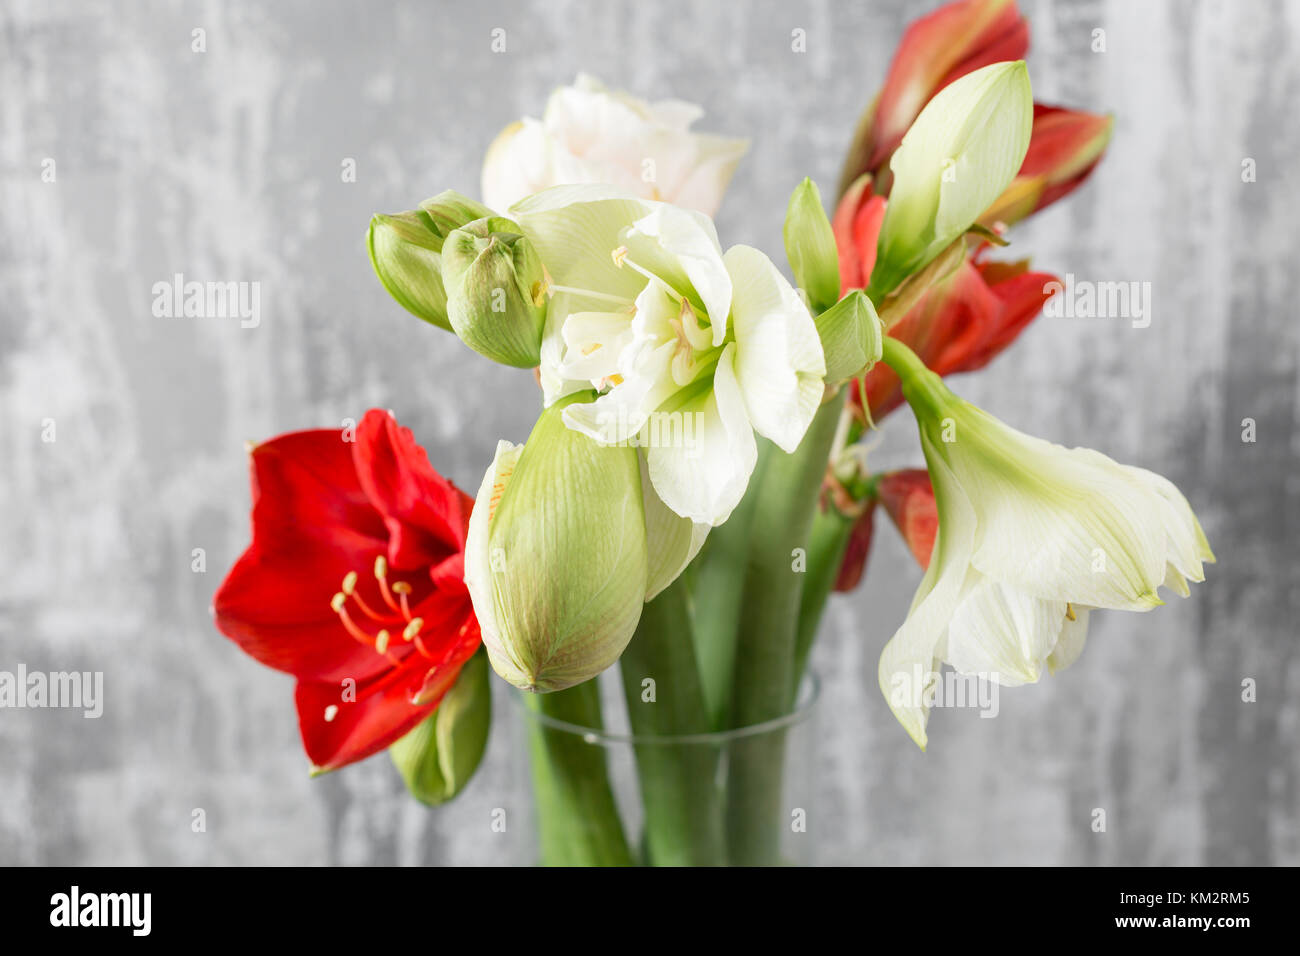 Winter flowers. Amaryllis in a vase watering can standing on a wooden table. On the background old gray wall art. - Stock Image